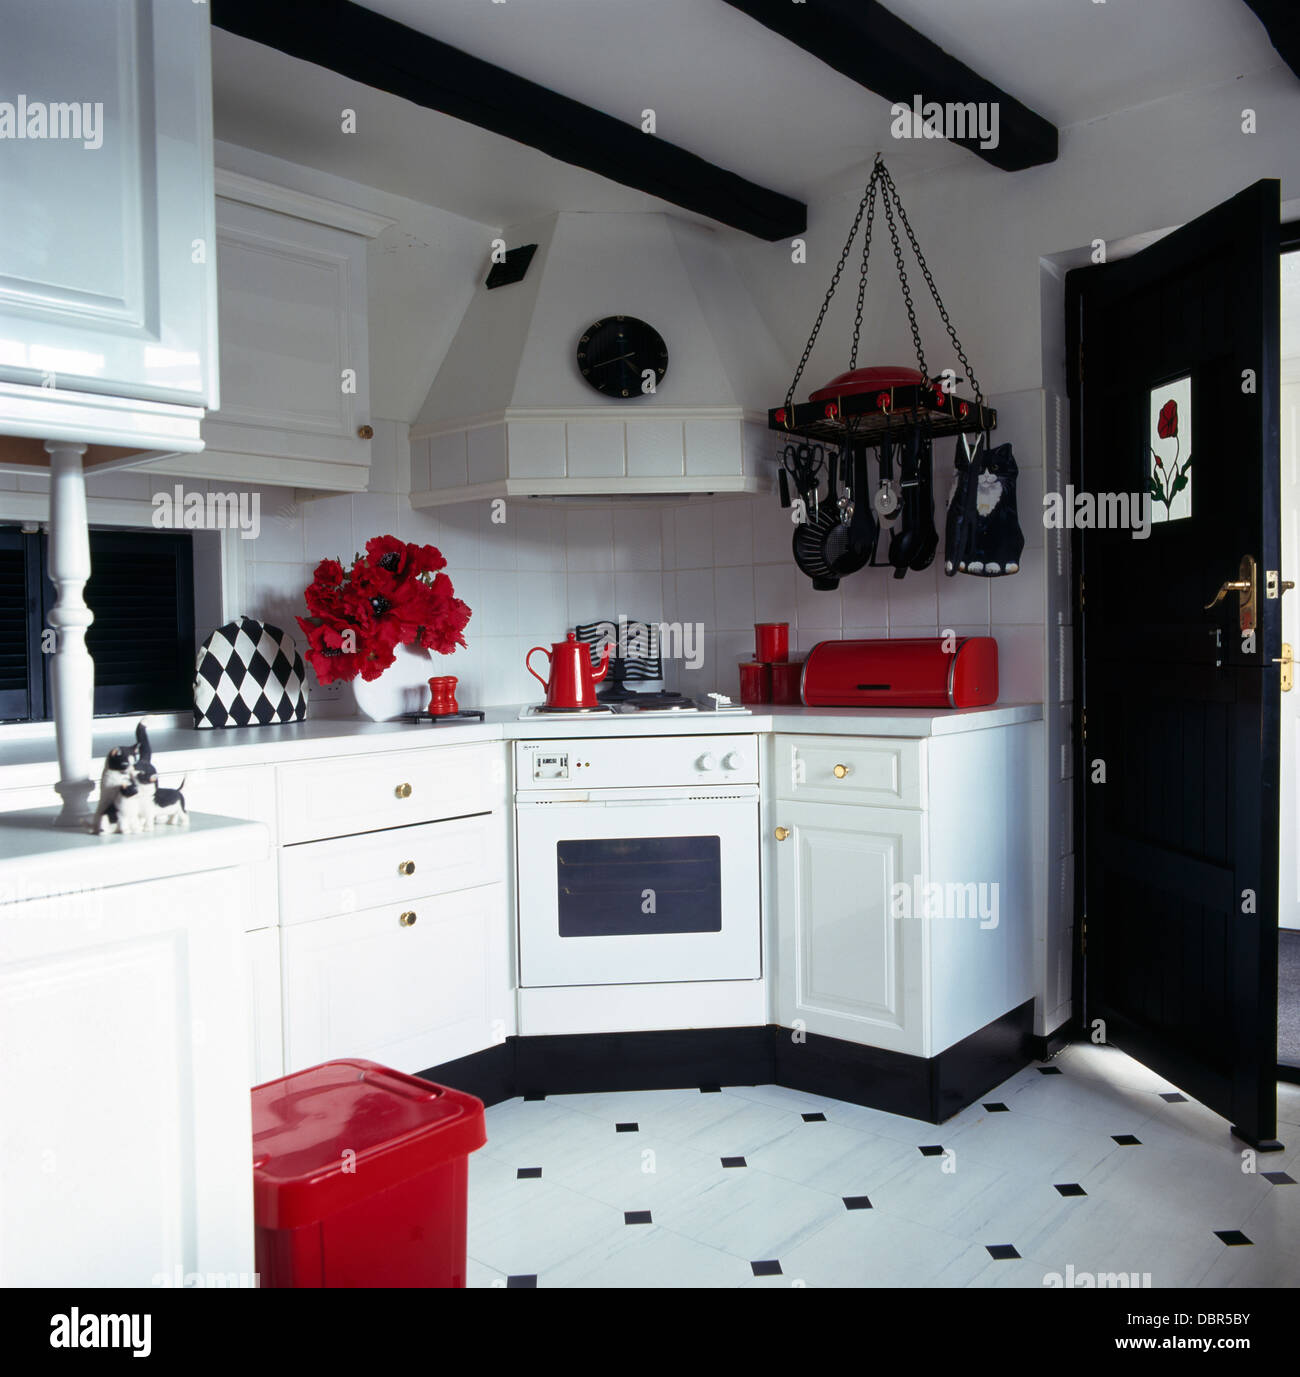 Red accessories in black and white kitchen with black+white vinyl flooring  and metal storage rack